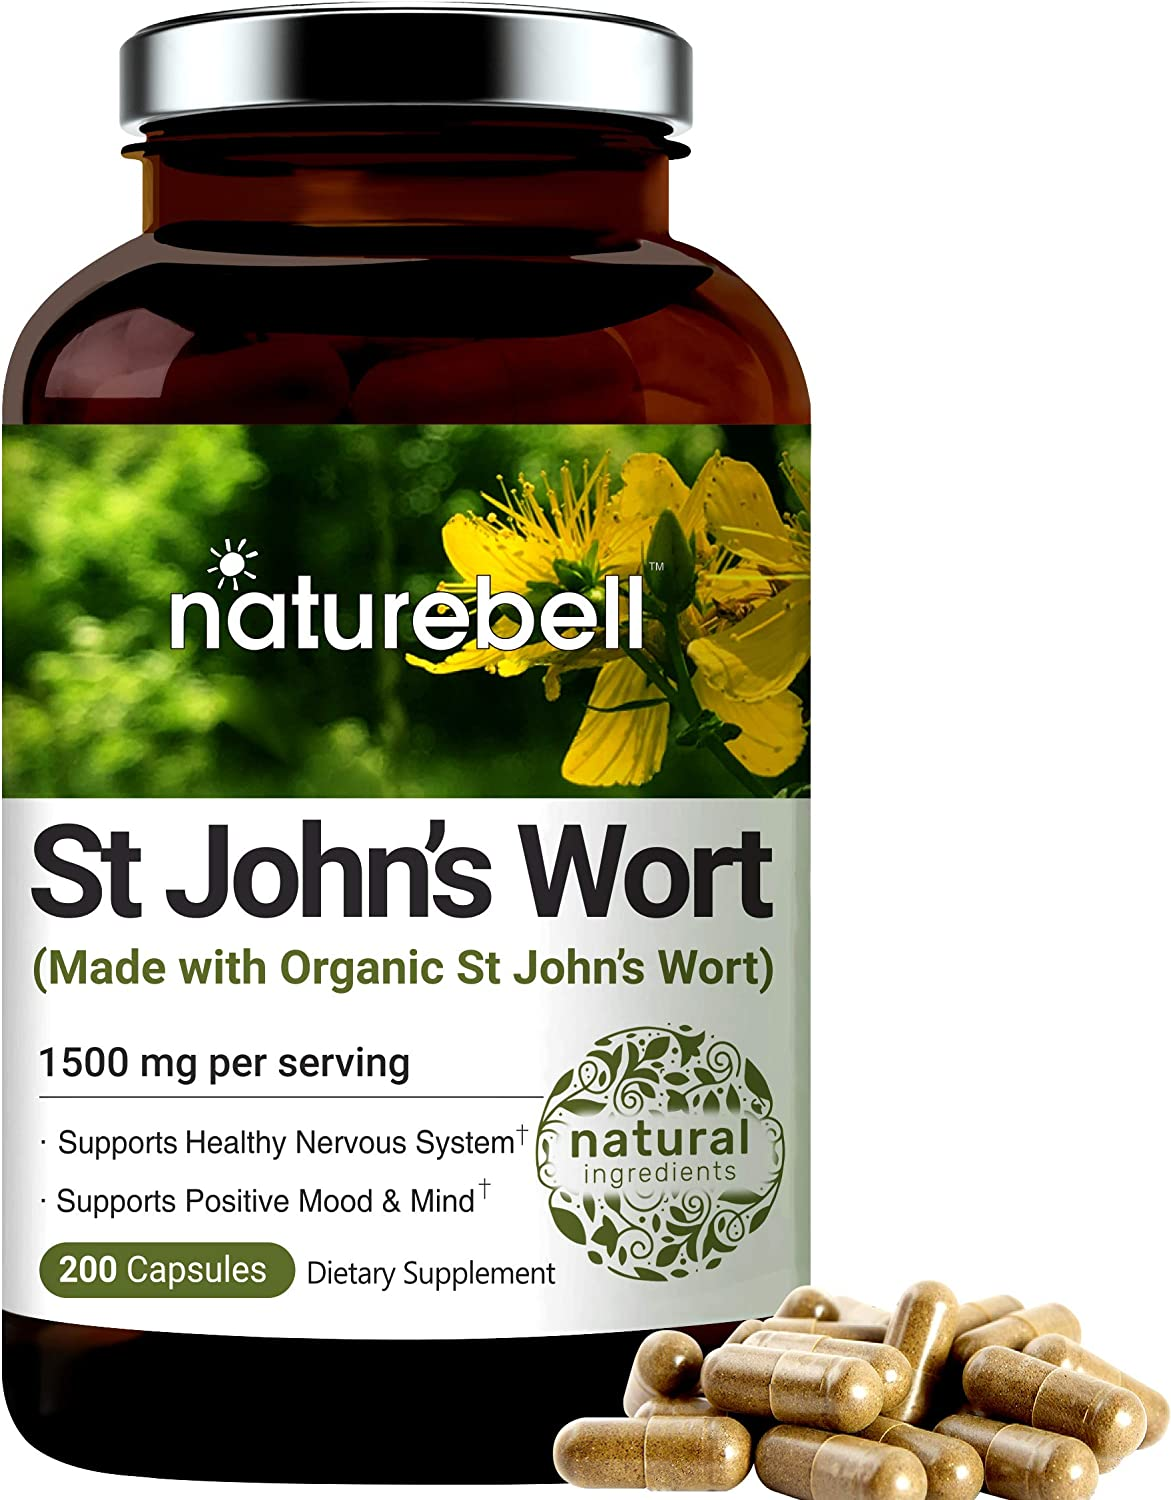 St John's Wort Supplement, Made with Organic St John's Wort Complex, 1500 mg Per Serving, 200 Capsules, Strongly Supports Positive Mood, Mind and Nervous System, No GMOs: Health & Personal Care